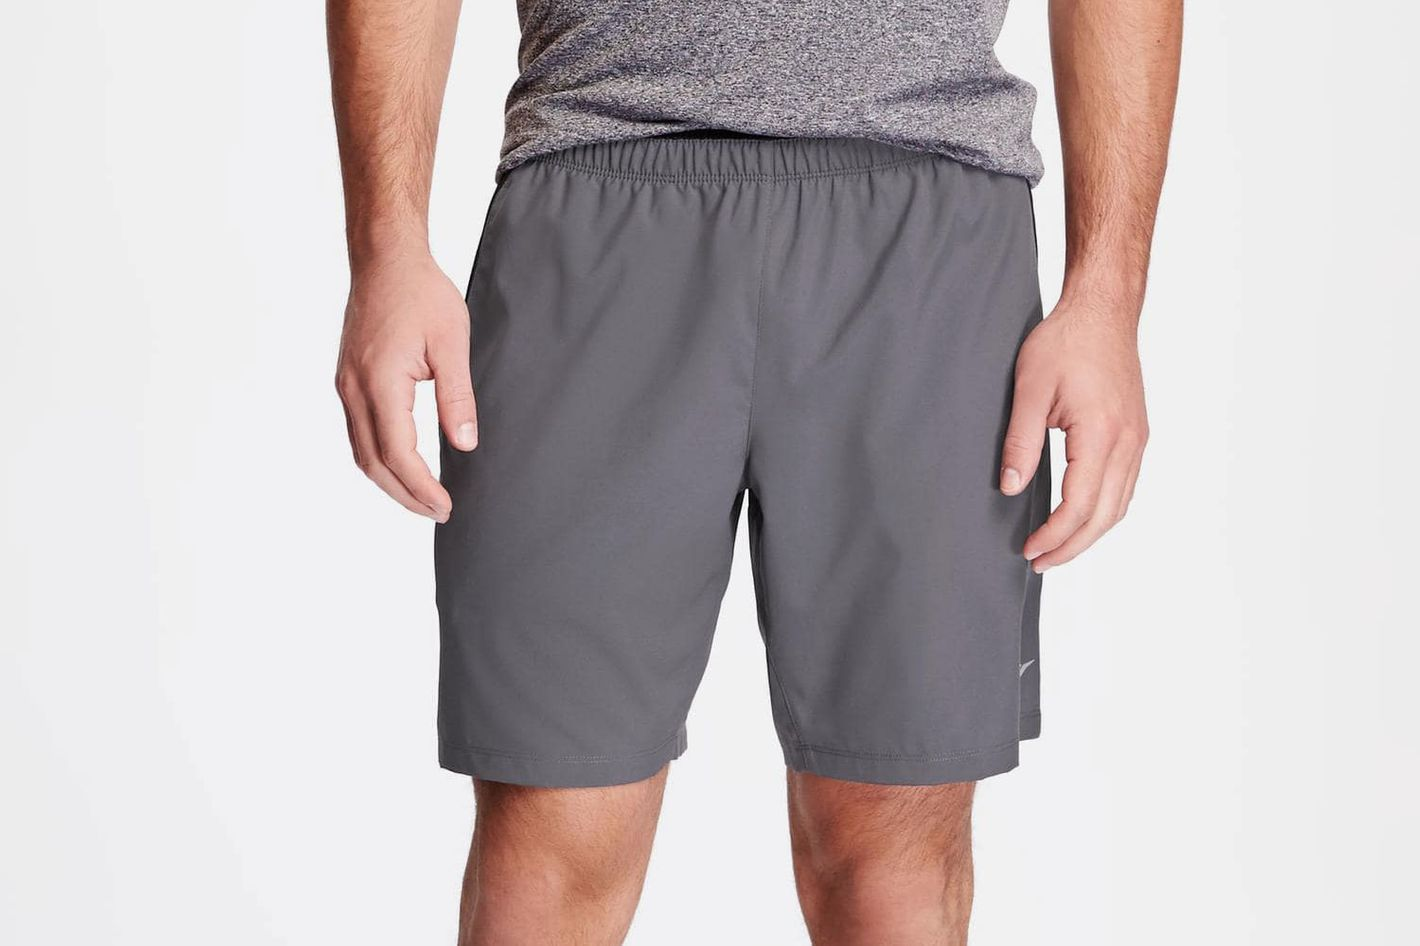 eb9abbb89a 12 Best Gym Shorts for Men: Running, CrossFit, Yoga 2018